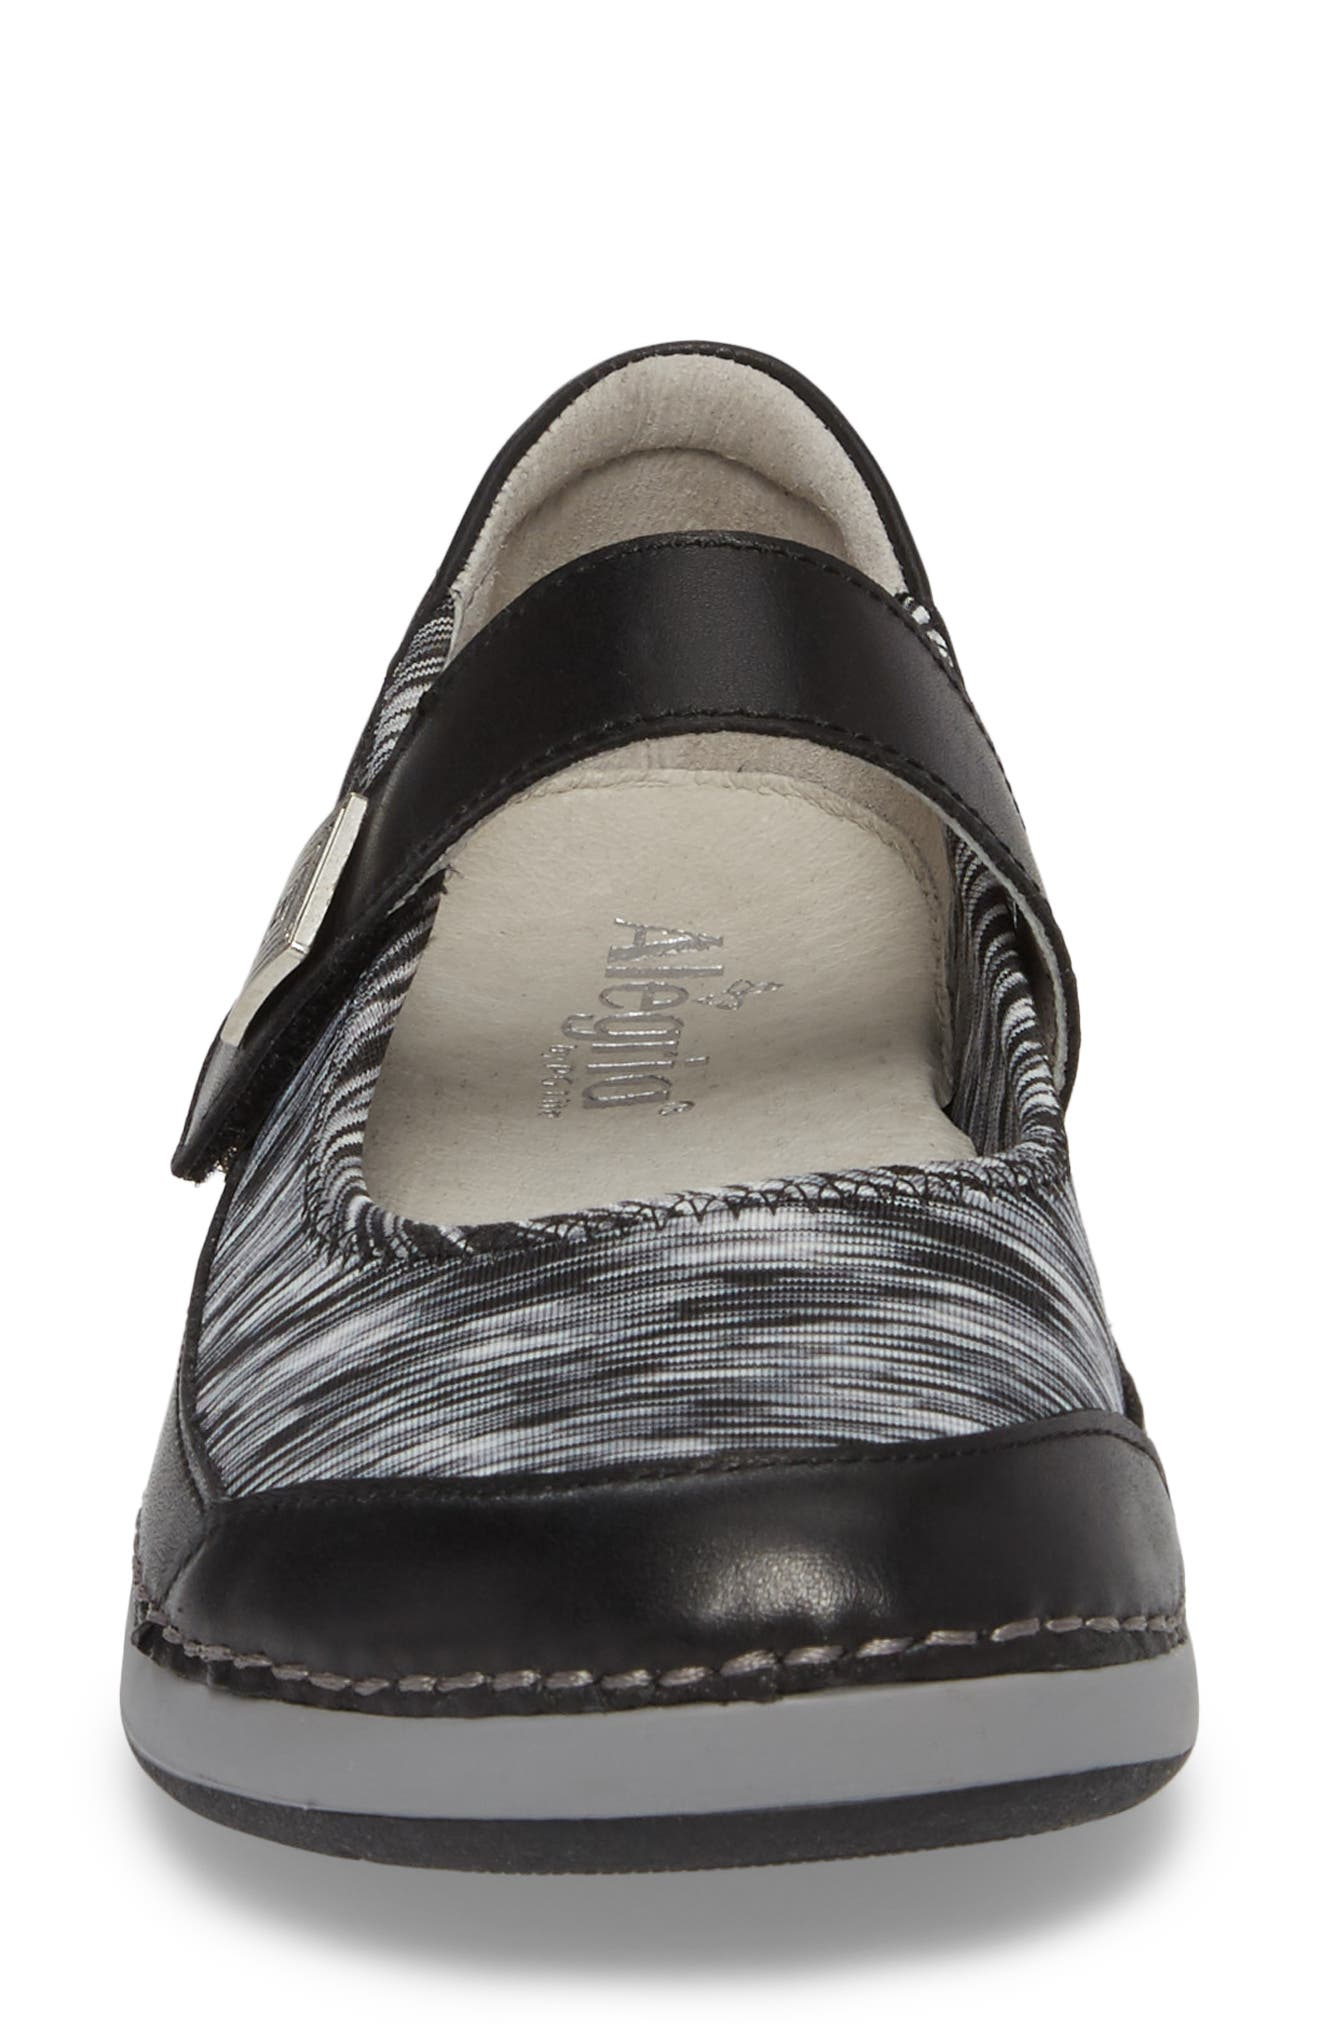 Gem Mary Jane Flat,                             Alternate thumbnail 4, color,                             BLACK LEATHER